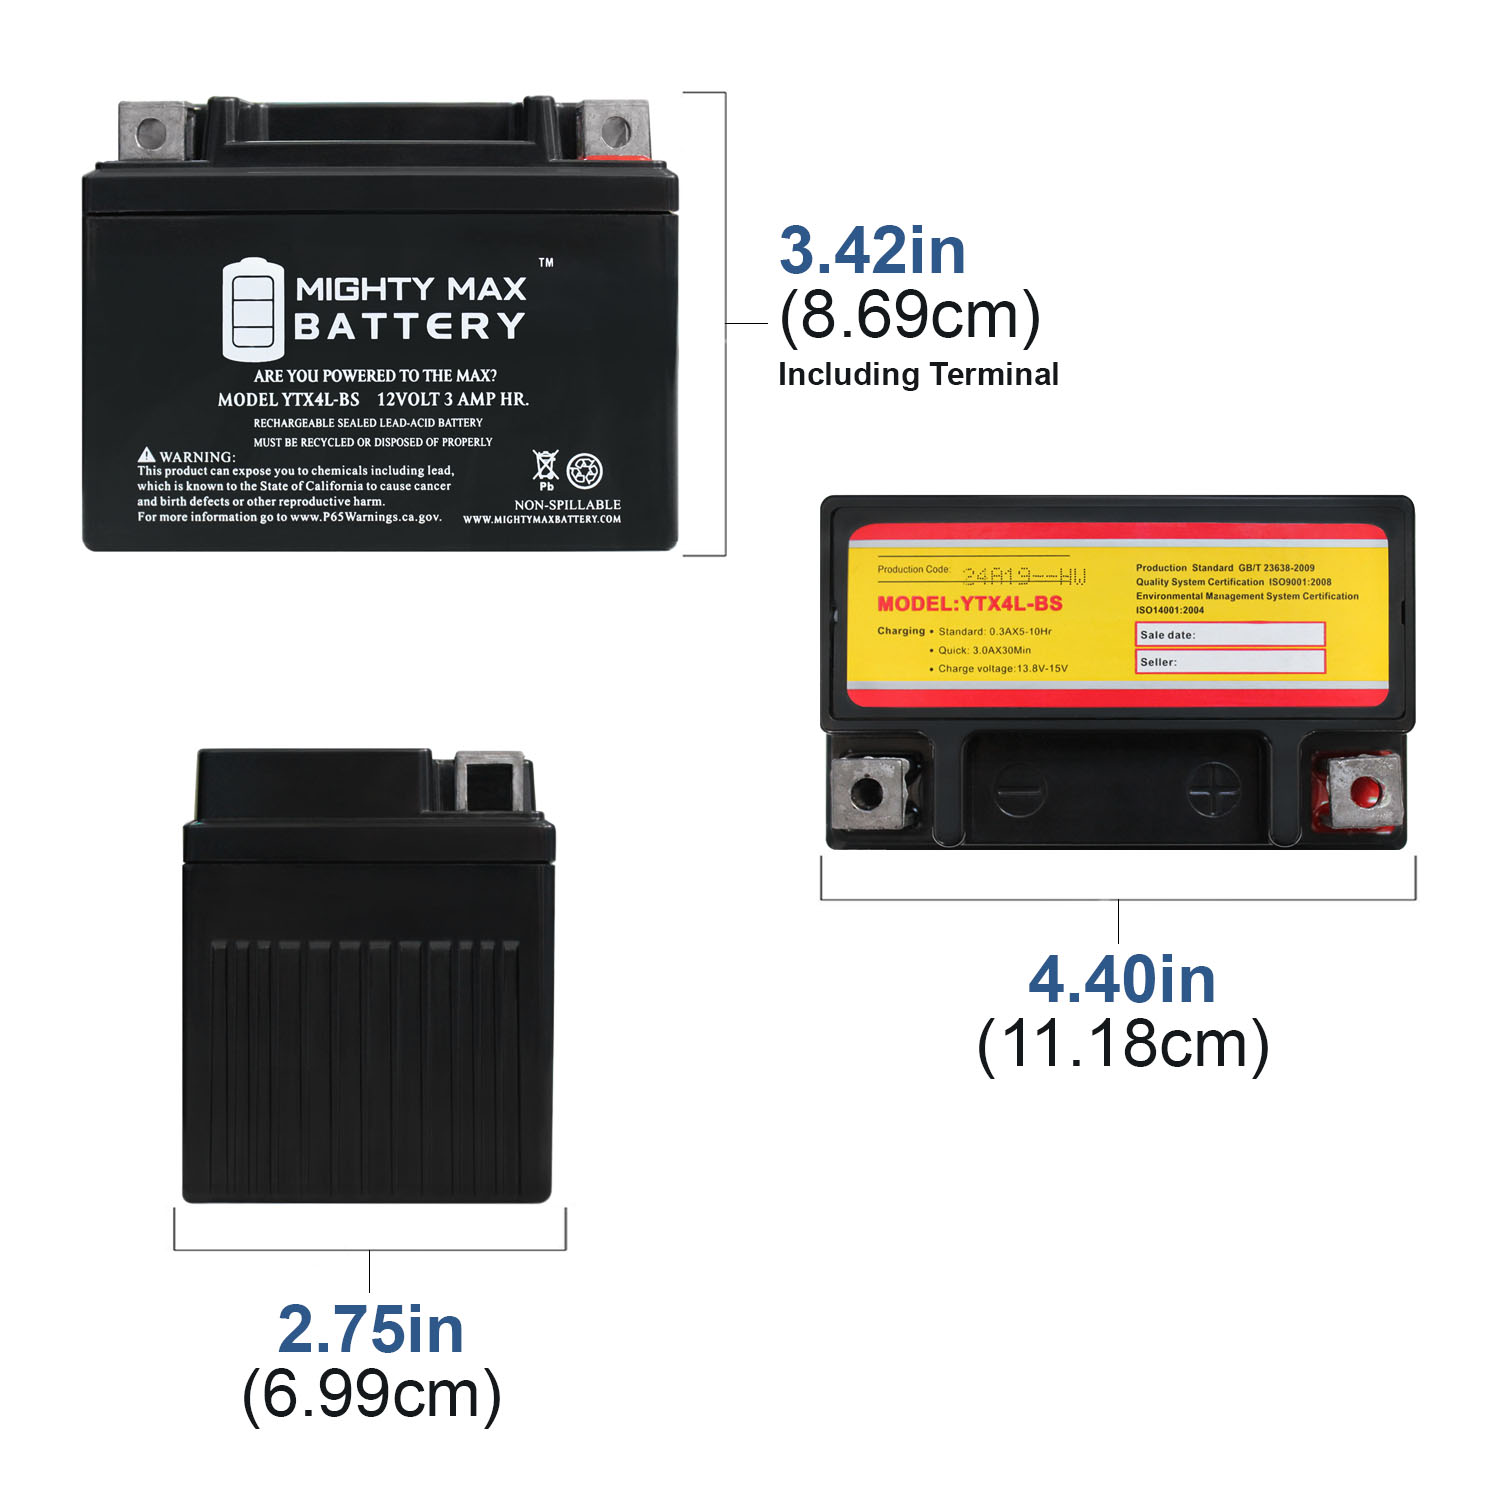 YTX4L-BS 12 VOLT 3AH MOTORCYCLE BATTERY REPLACES YTX4L-BS - 2 PACK - 1